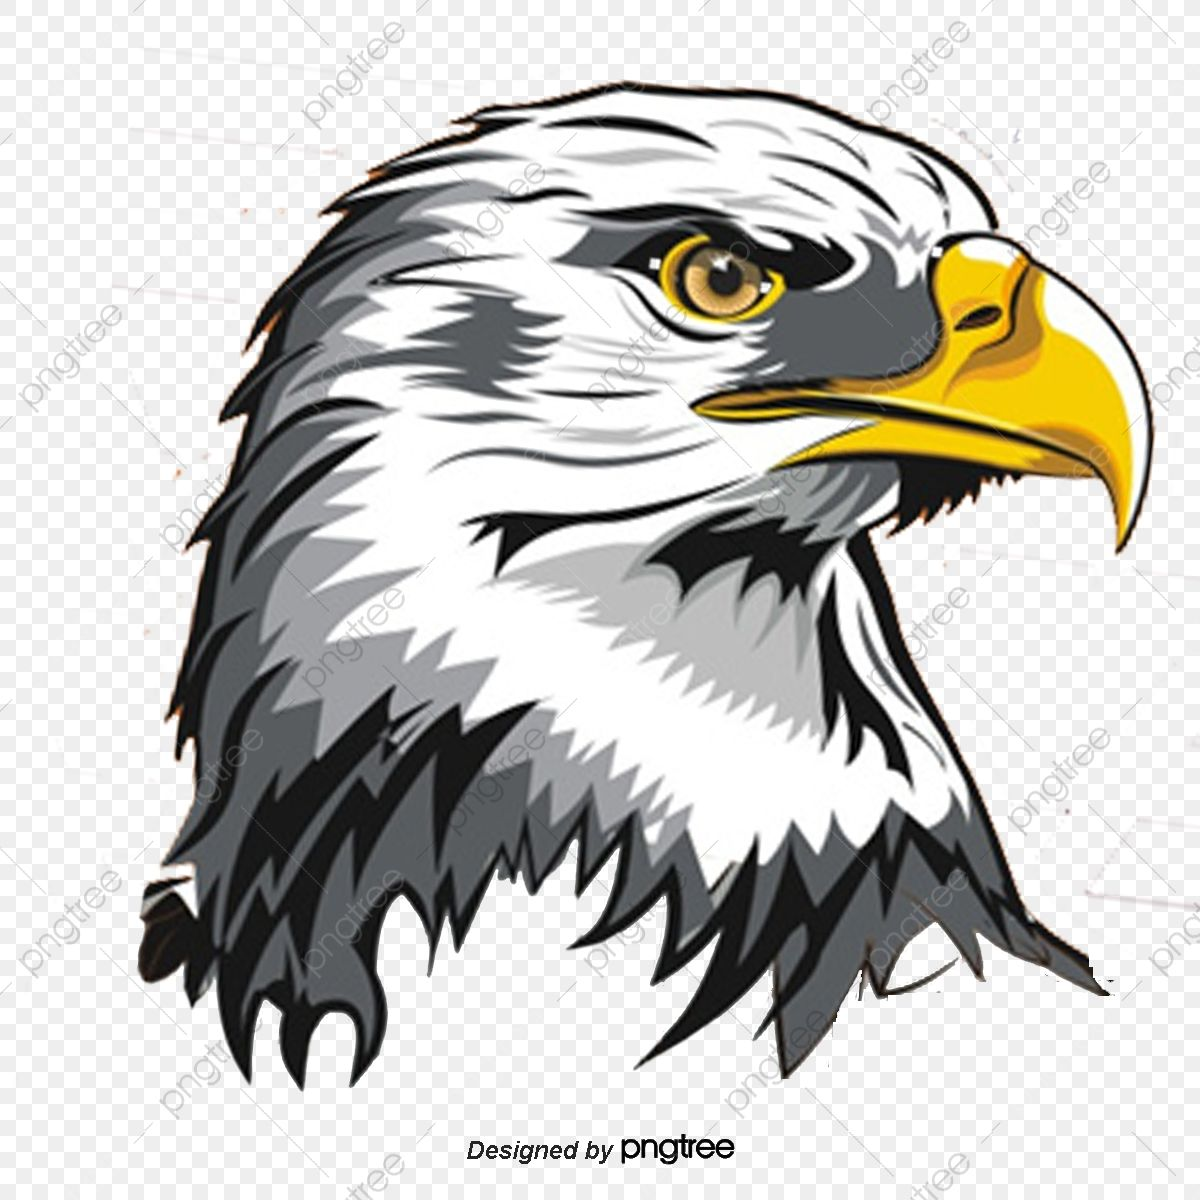 Eagle Eagle Vector Animal Renderings Png Transparent Clipart Image And Psd File For Free Download Eagle Vector Eagle Images Eagle Drawing